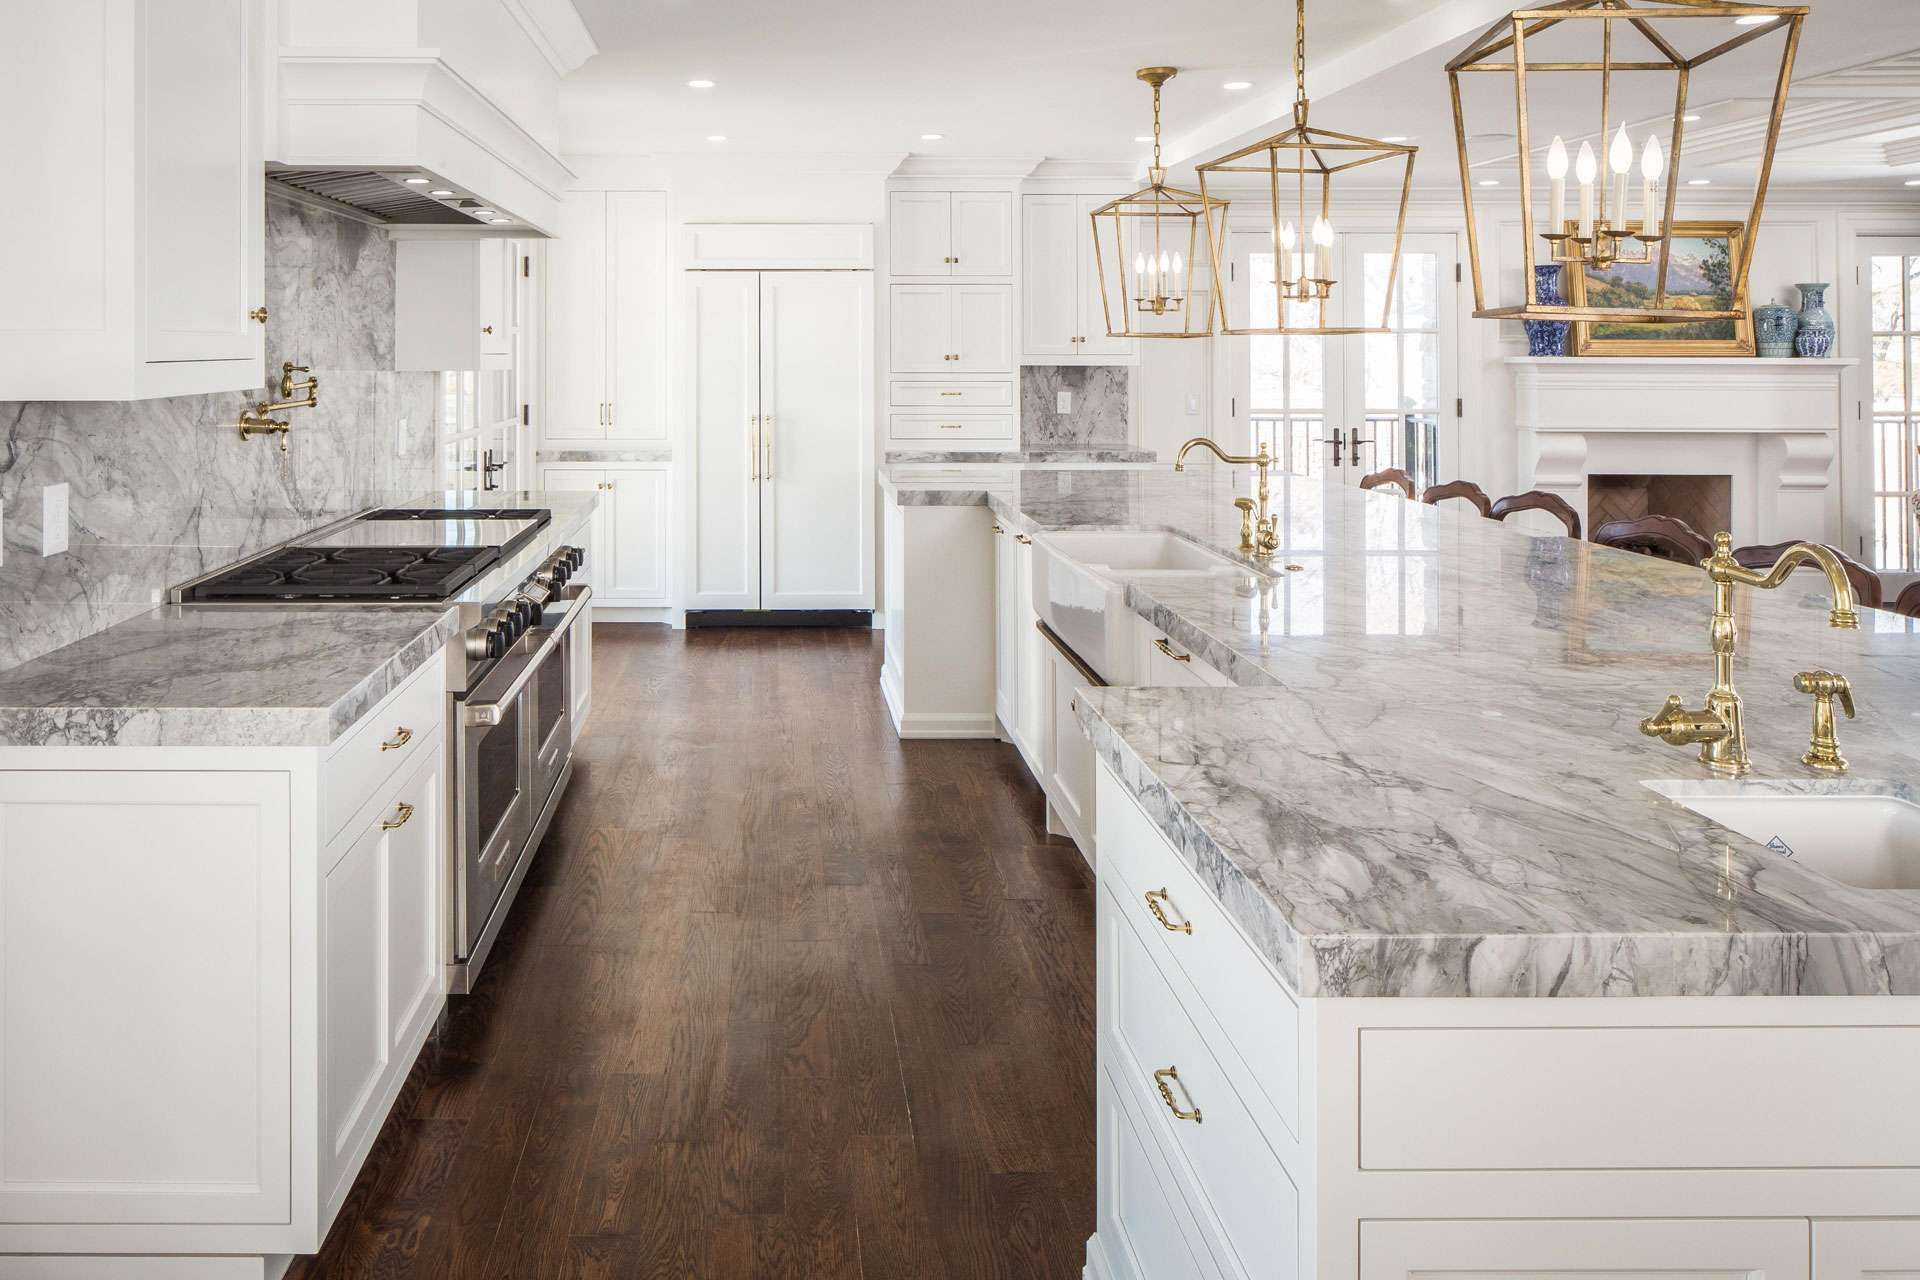 Beautiful White Kitchens House Of Hargrove Check Out These Stunning White Kitchens Full Of Inspiratio Antique White Kitchen Beautiful Kitchens Kitchen Models